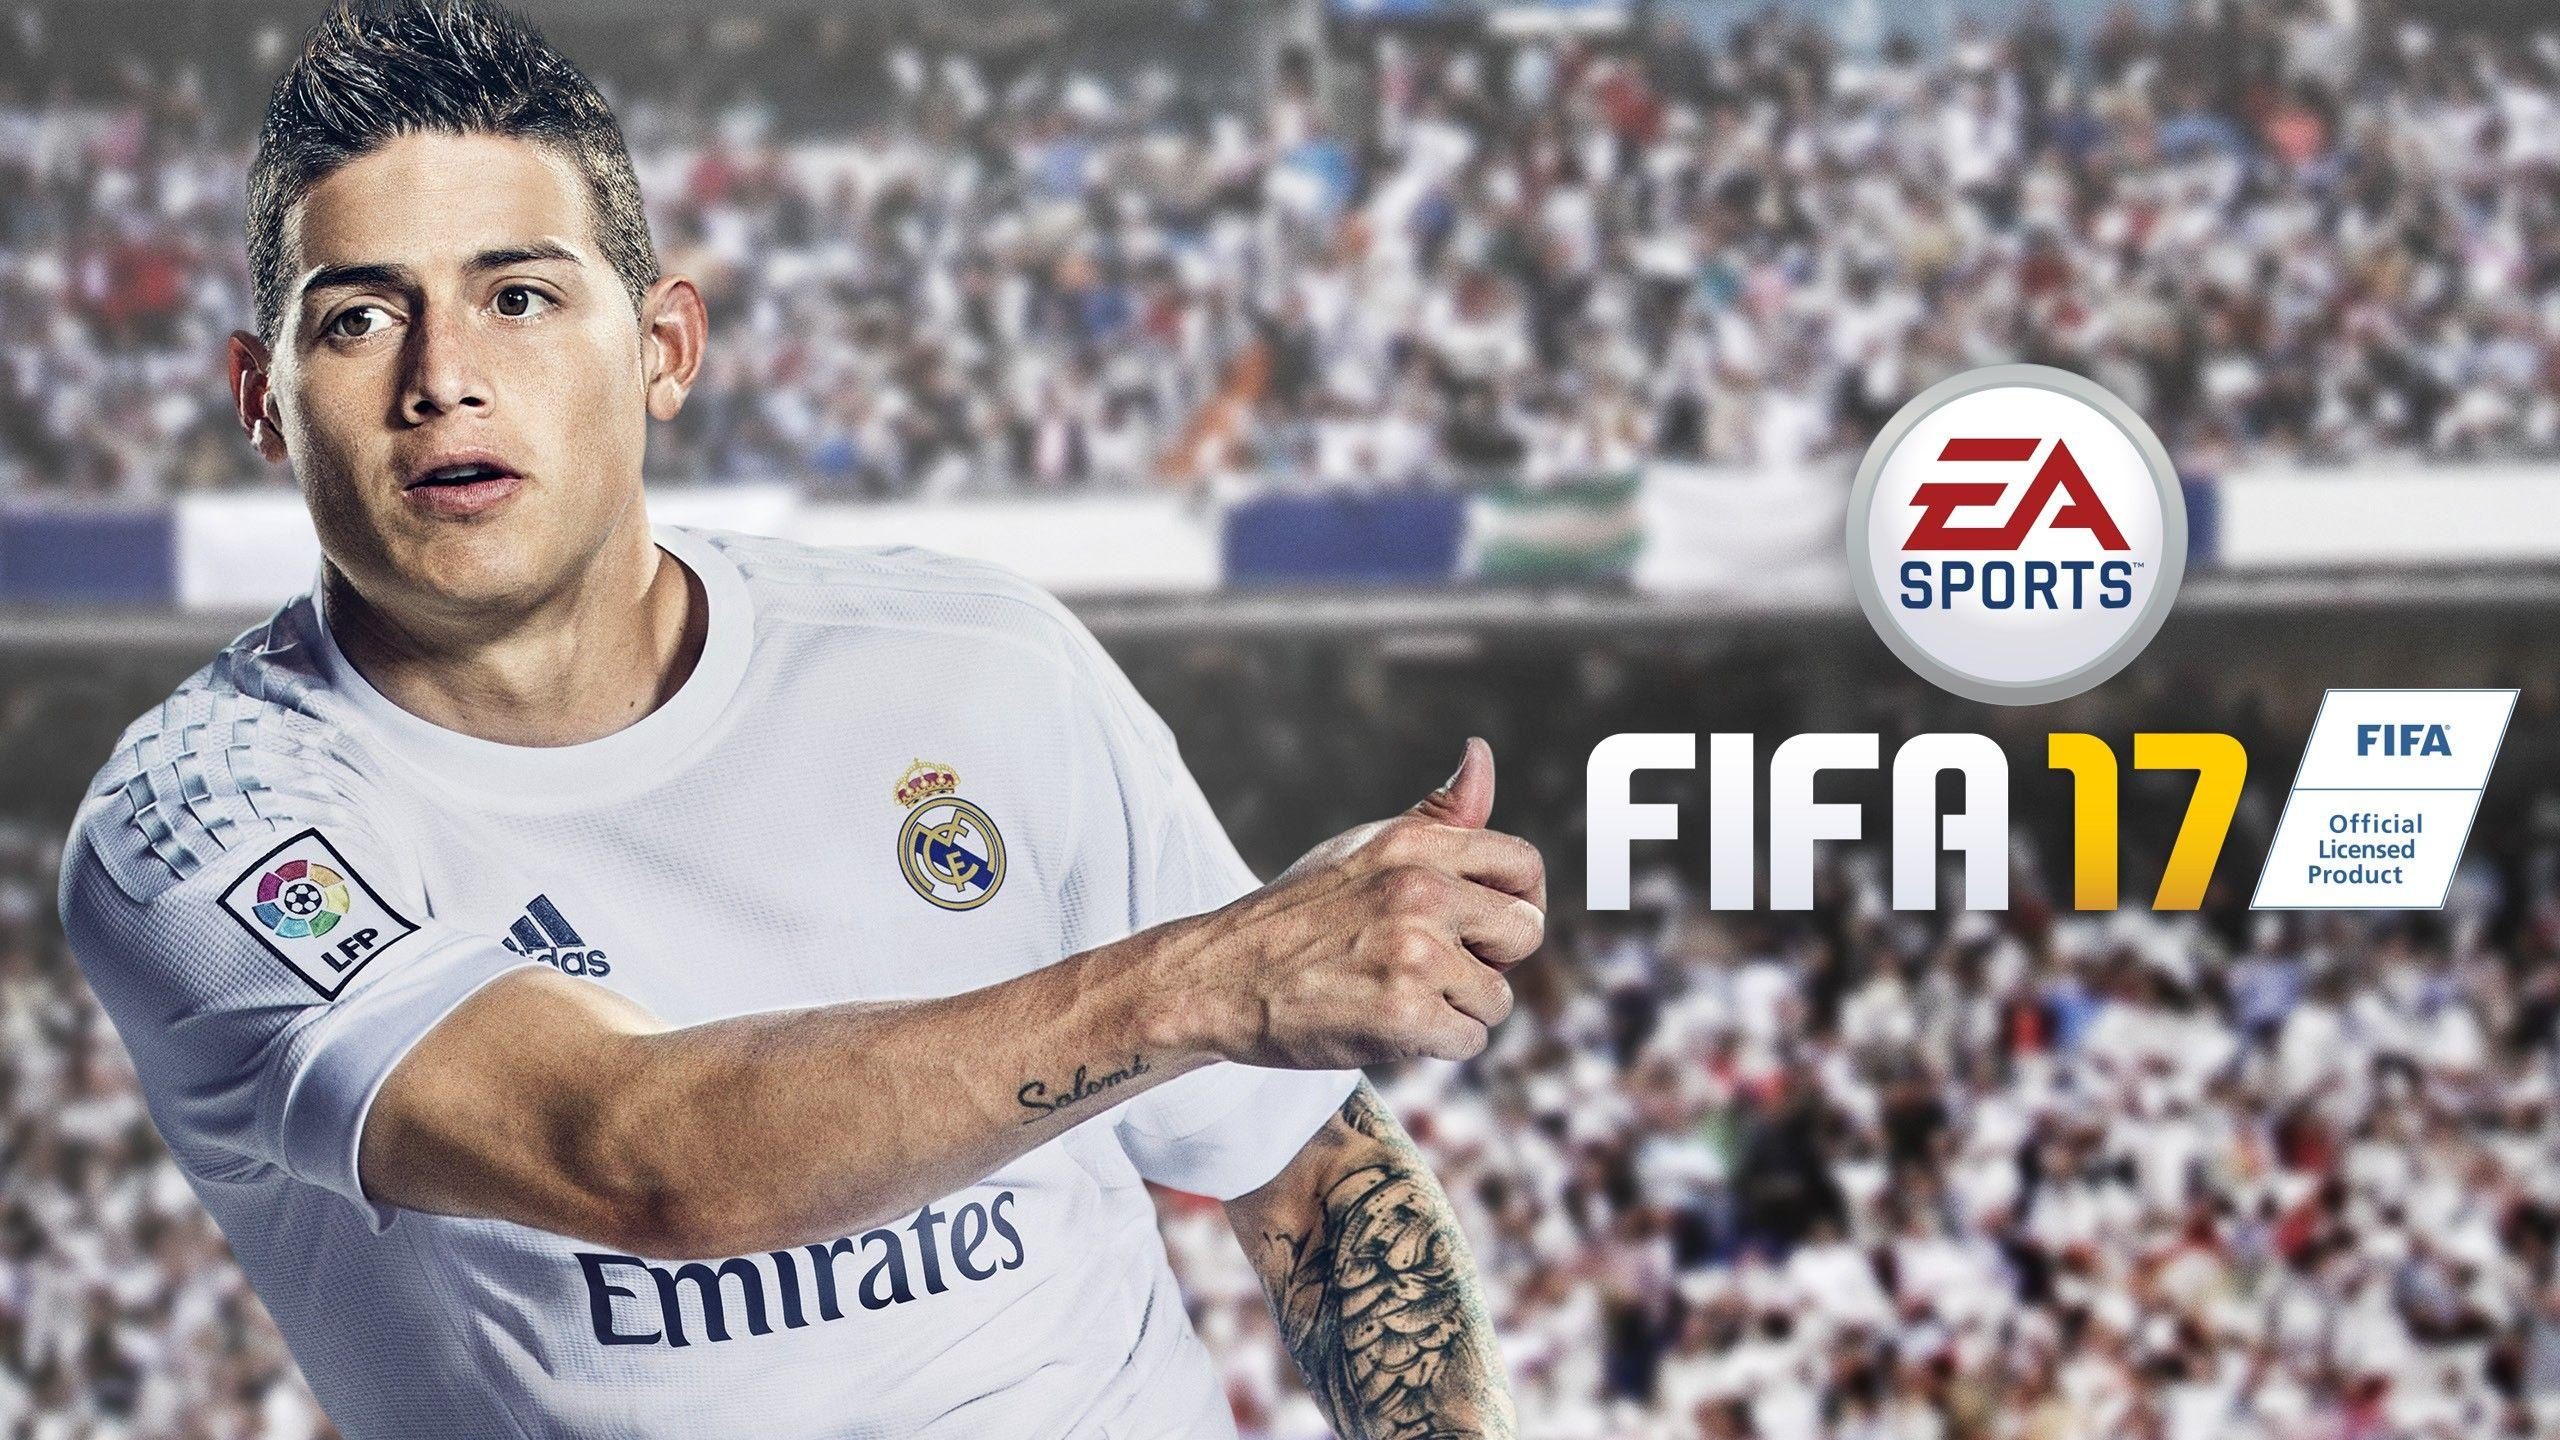 James Rodriguez FIFA 17 Wallpapers | HD Wallpapers